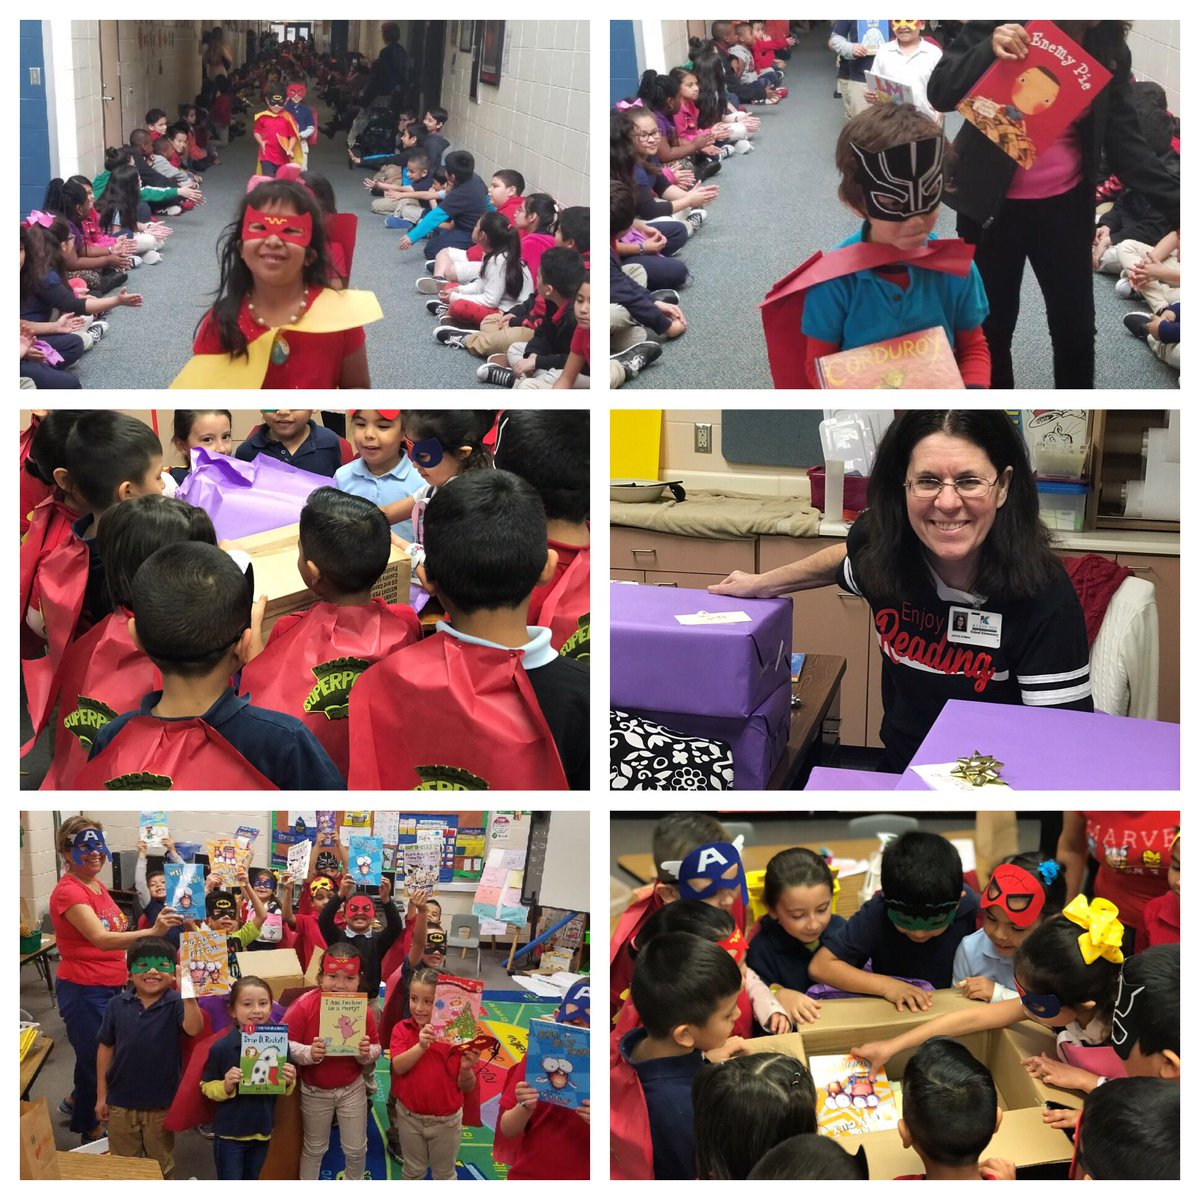 """2019 Valentine's Day at @EilandKISD: -Kindergarten parade to celebrate their new """"superpower""""(reading)📚✅ -Wrap special gift boxes🎁 ✅ -Deliver surprise to all Kinder rooms✅ -EVERY Kinder student gets a new book✅ @bookafterbook @DozierLynne #EilandFanTheFlame #MomentsInKlein"""